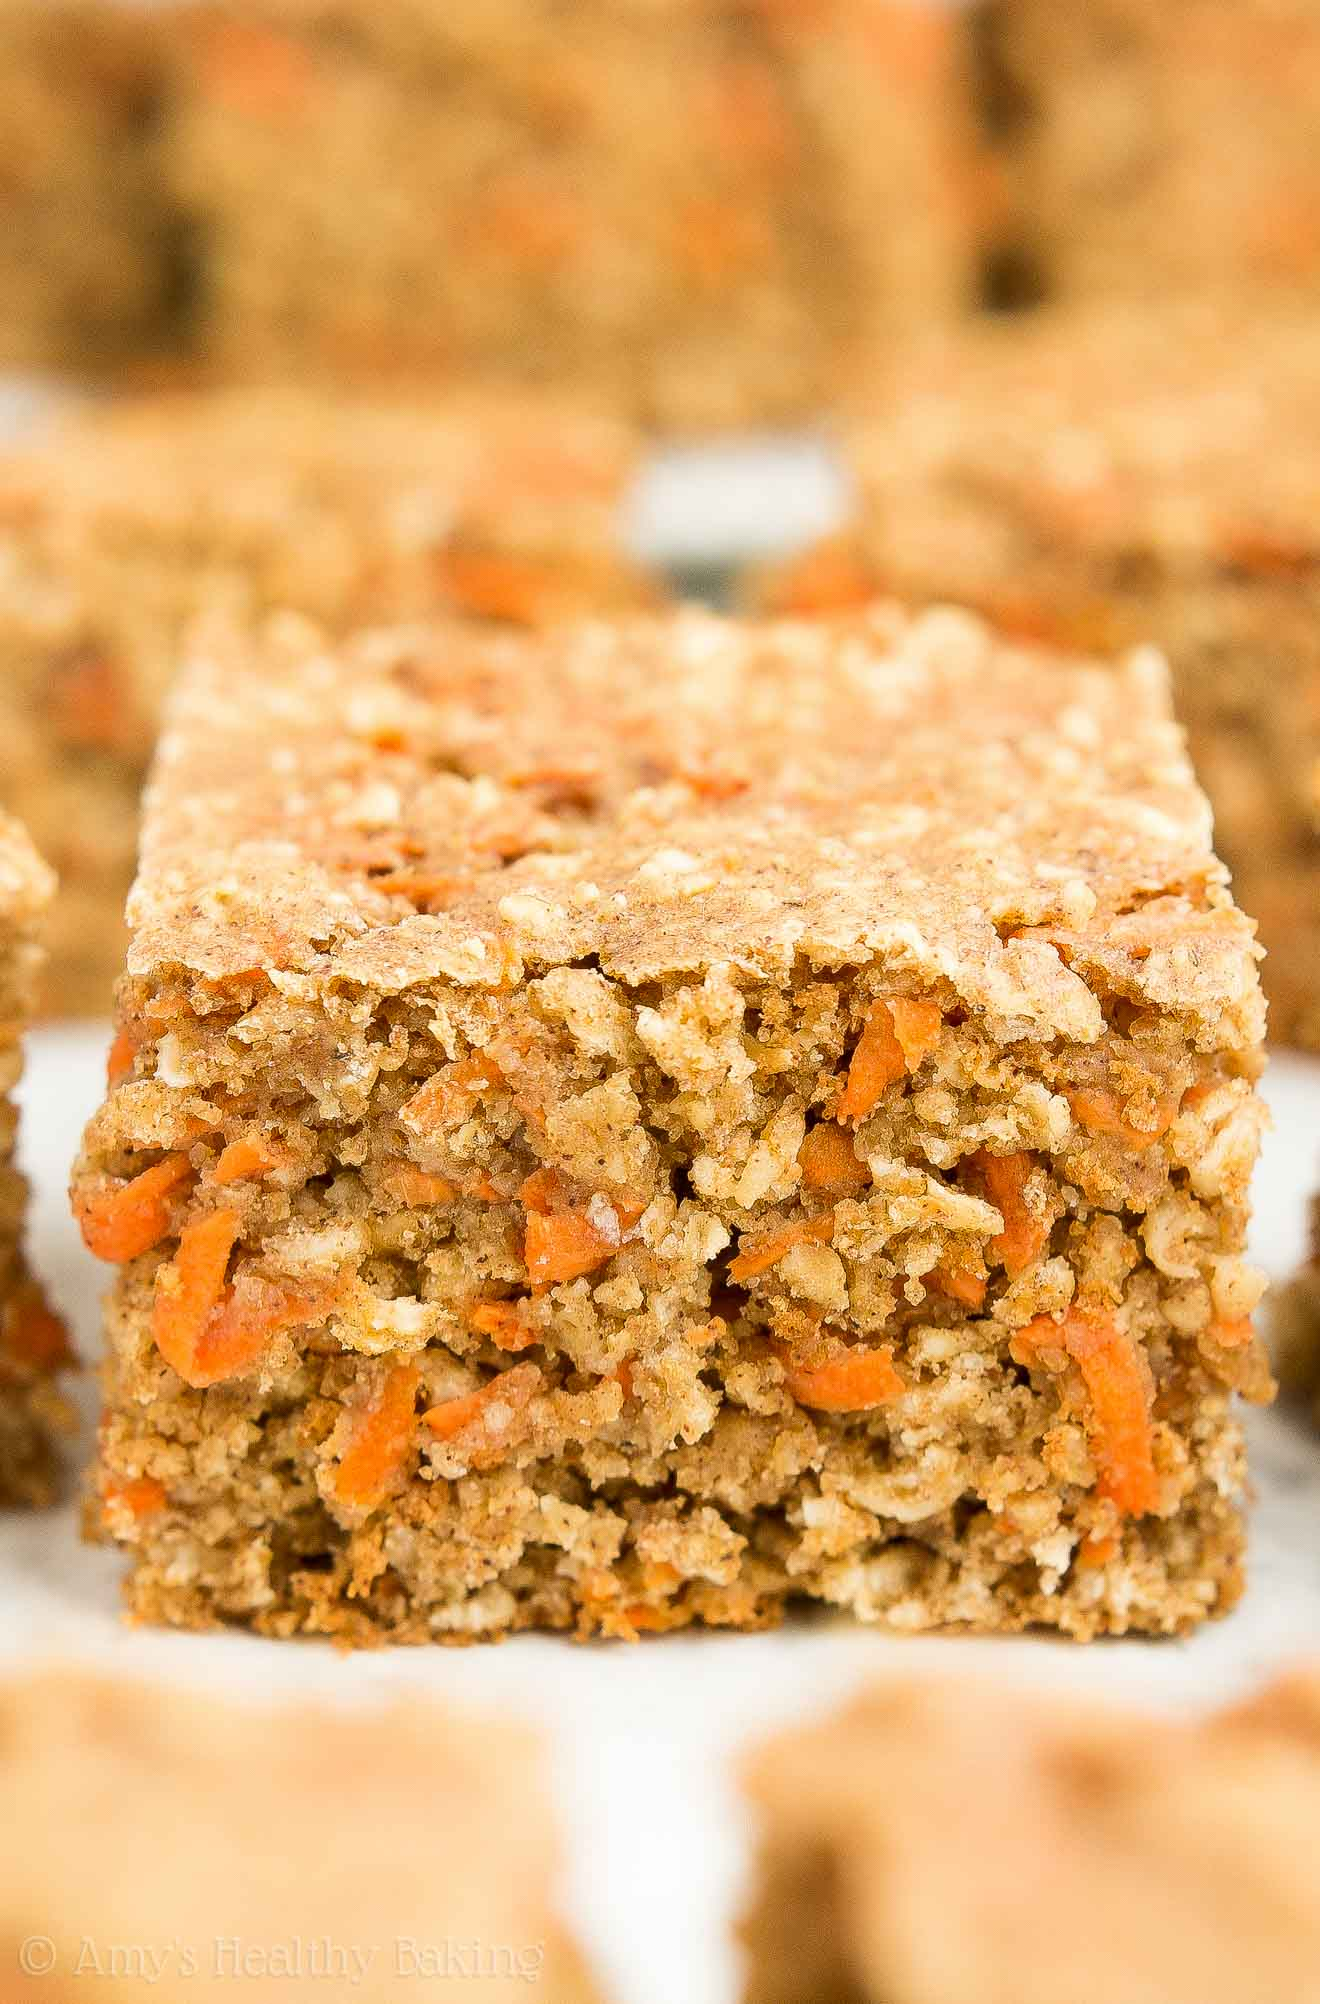 Best Healthiest Carrot Cake Recipe